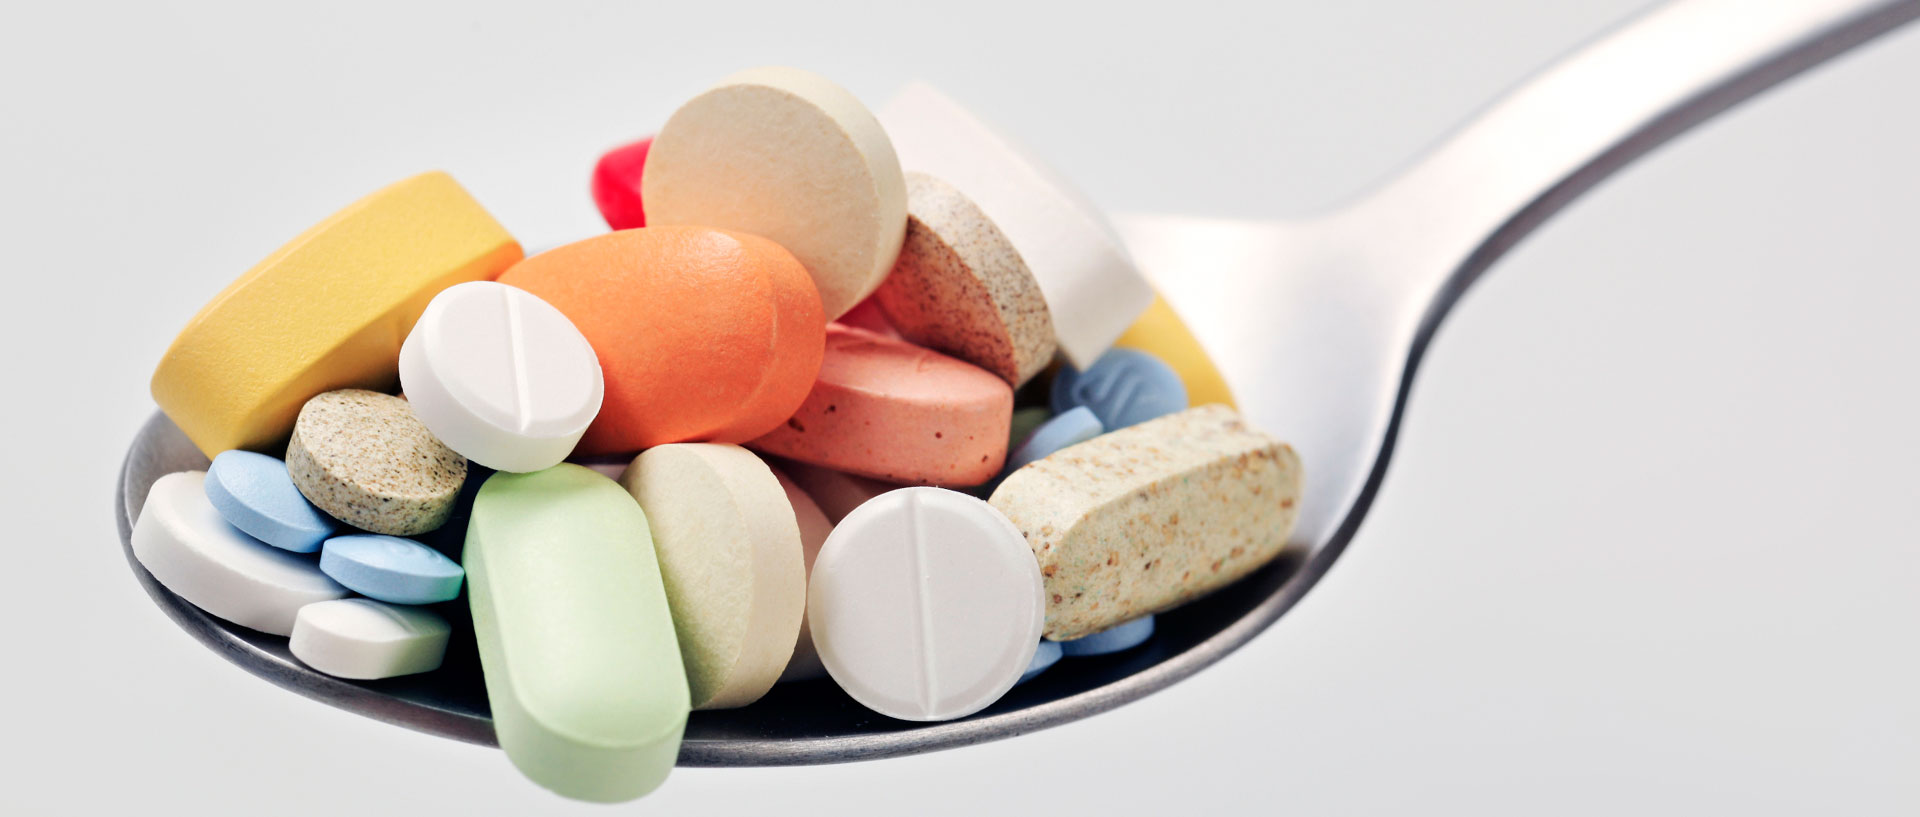 supplements and drug interactions consumer reports